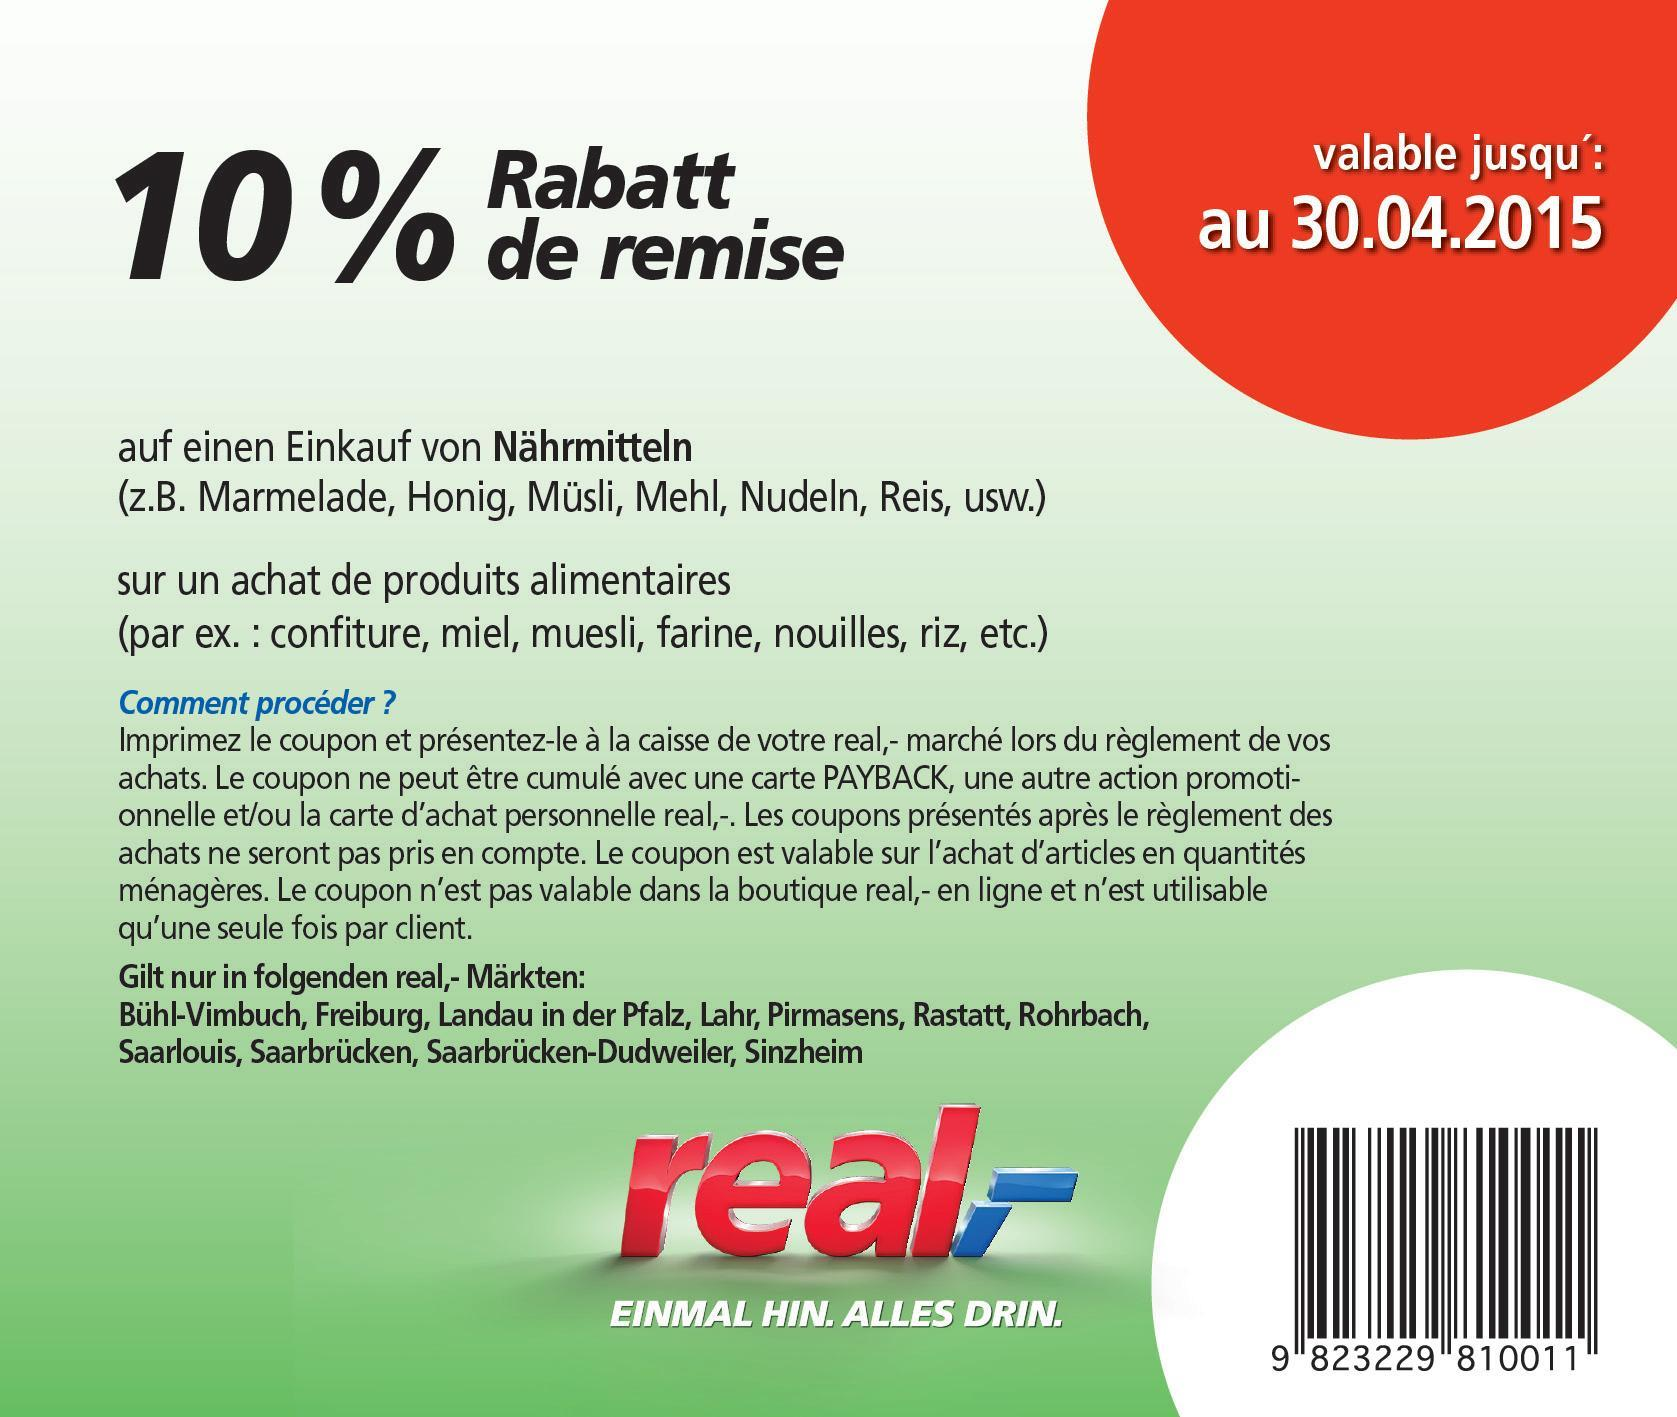 coupons_apr_2015_fr-pjmbz2.jpg